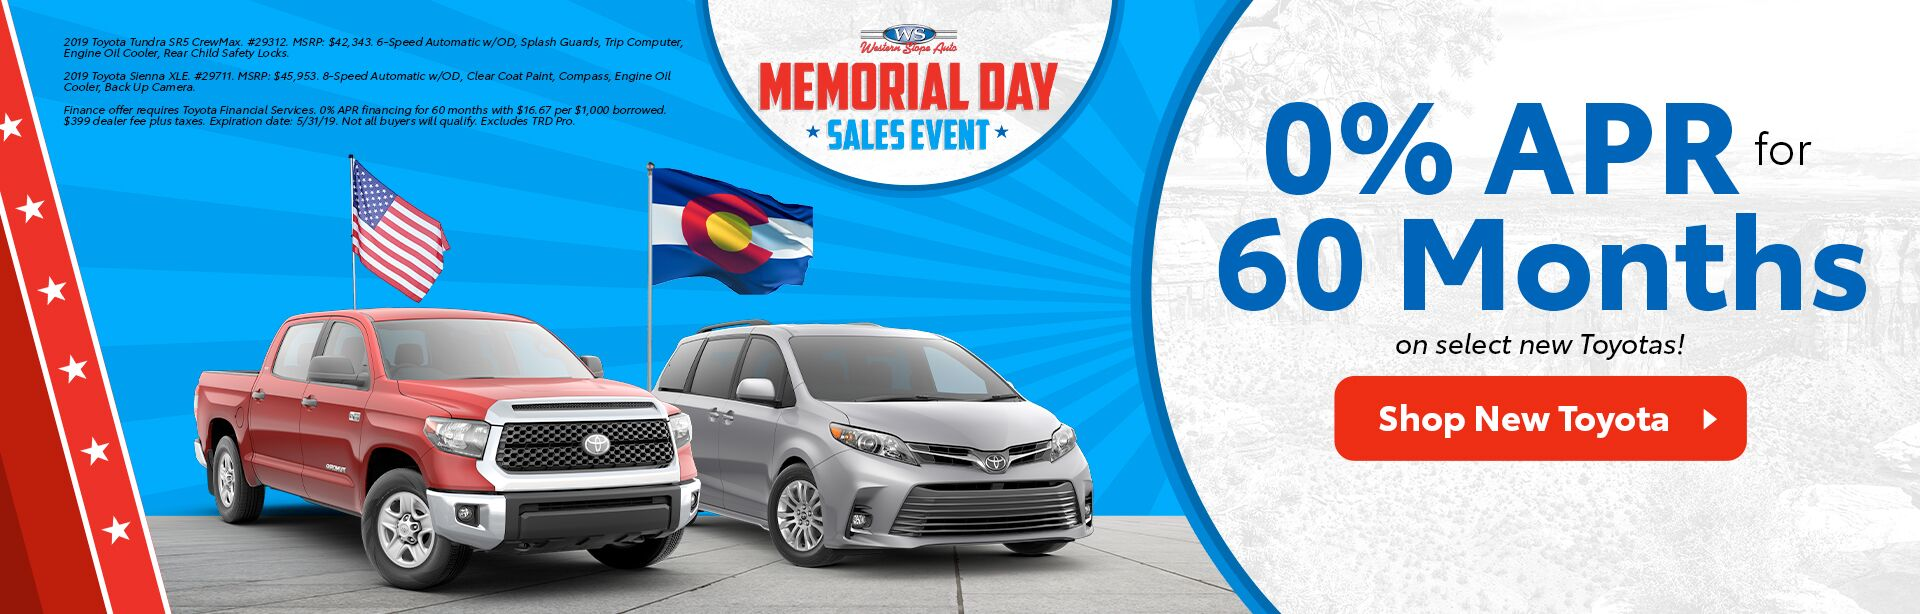 Memorial Day Sales Event at Western Slope Toyota